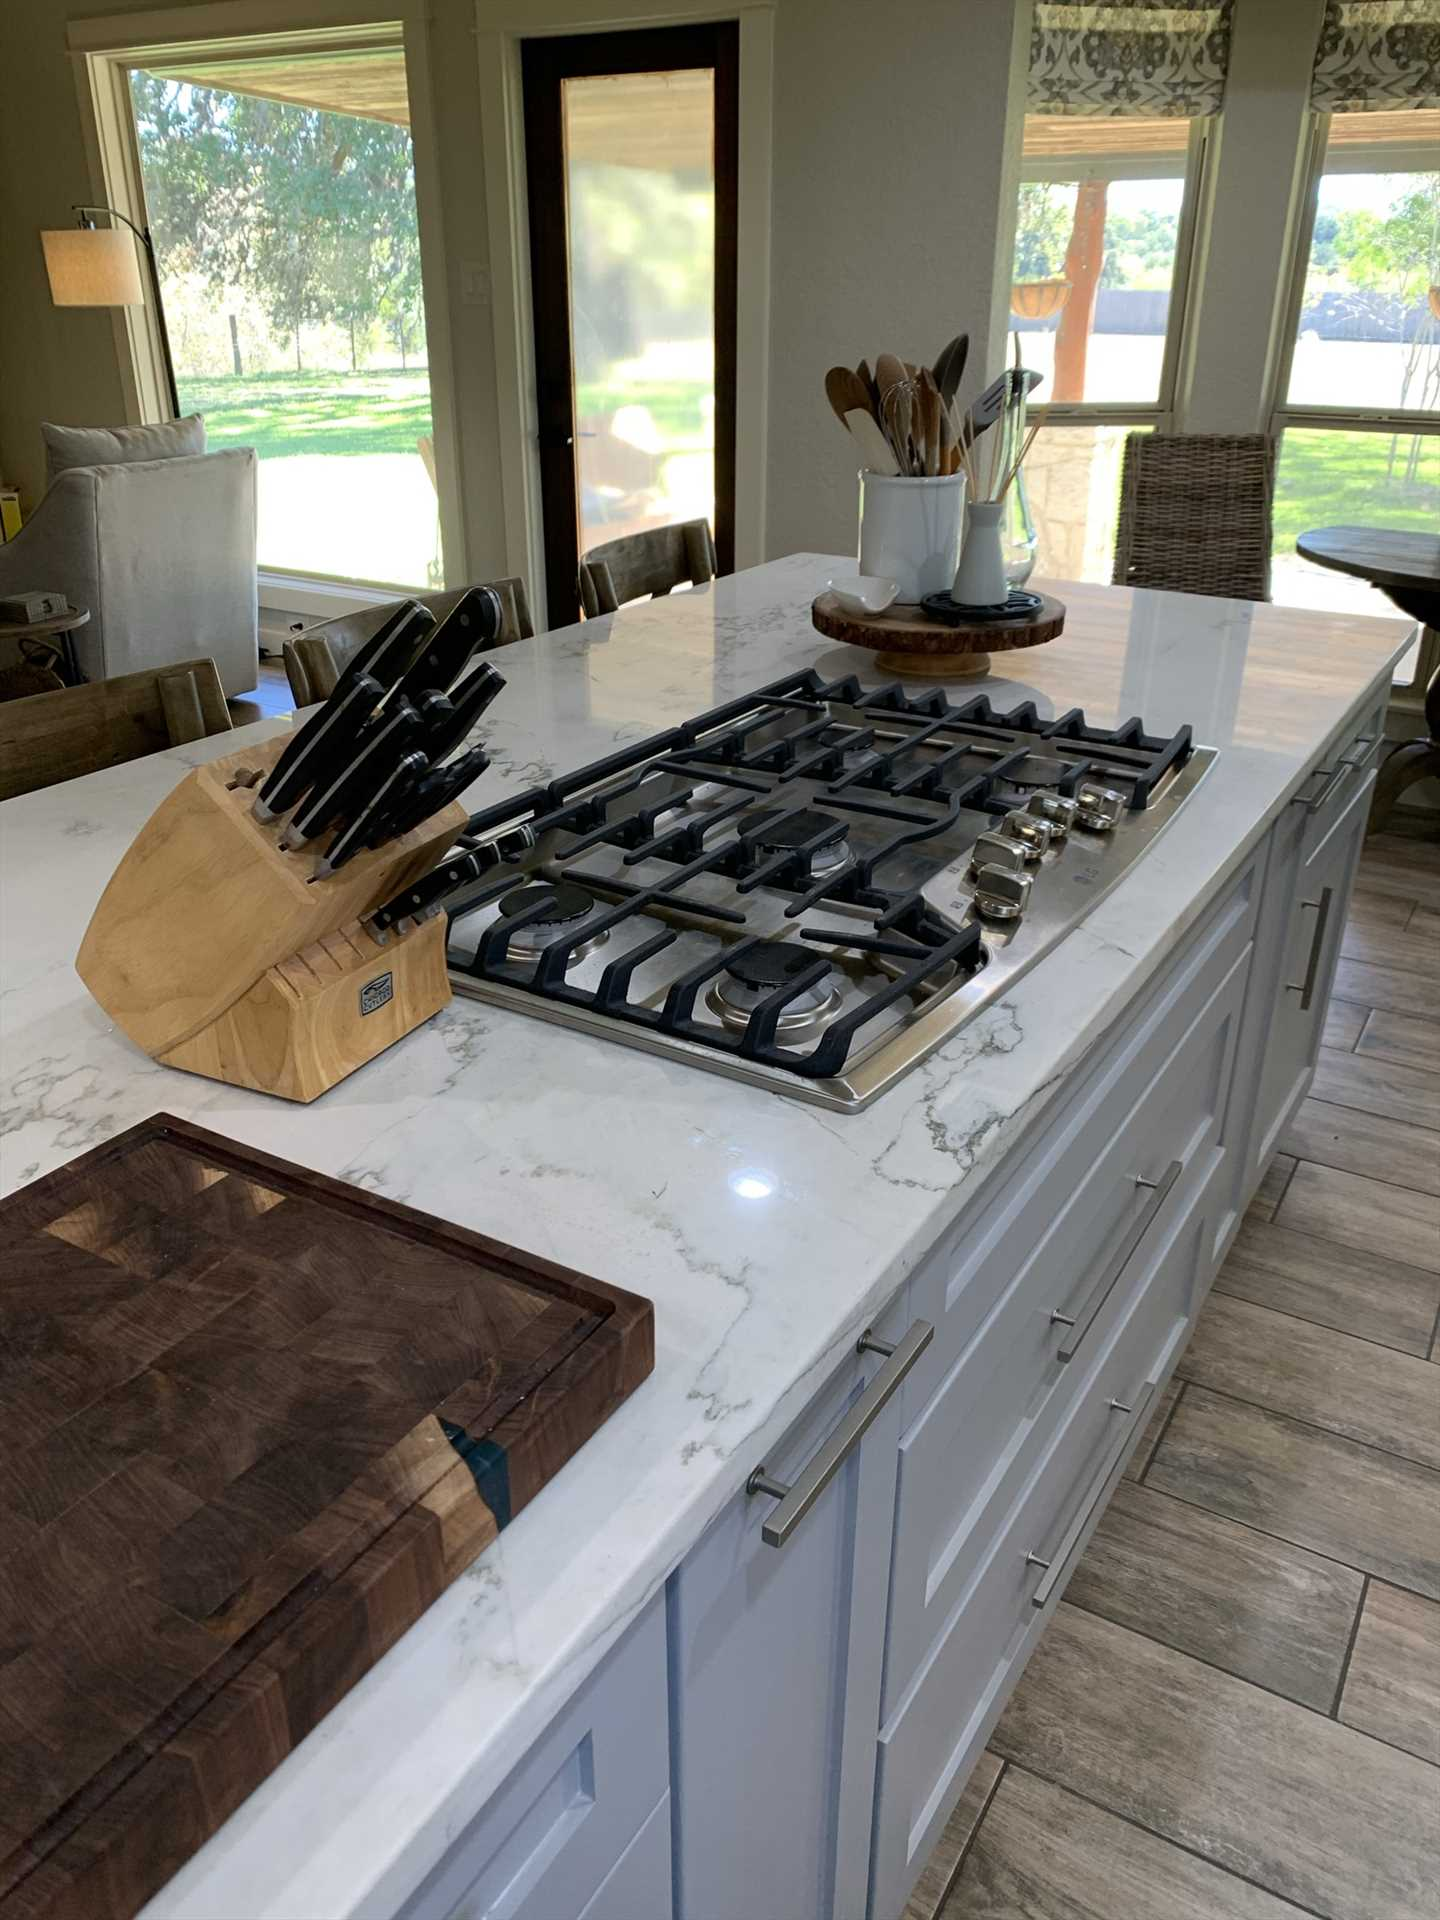 The big five-burner stove and wood cutting board are just two of the stations in the kitchen where your cooks can strut their stuff!